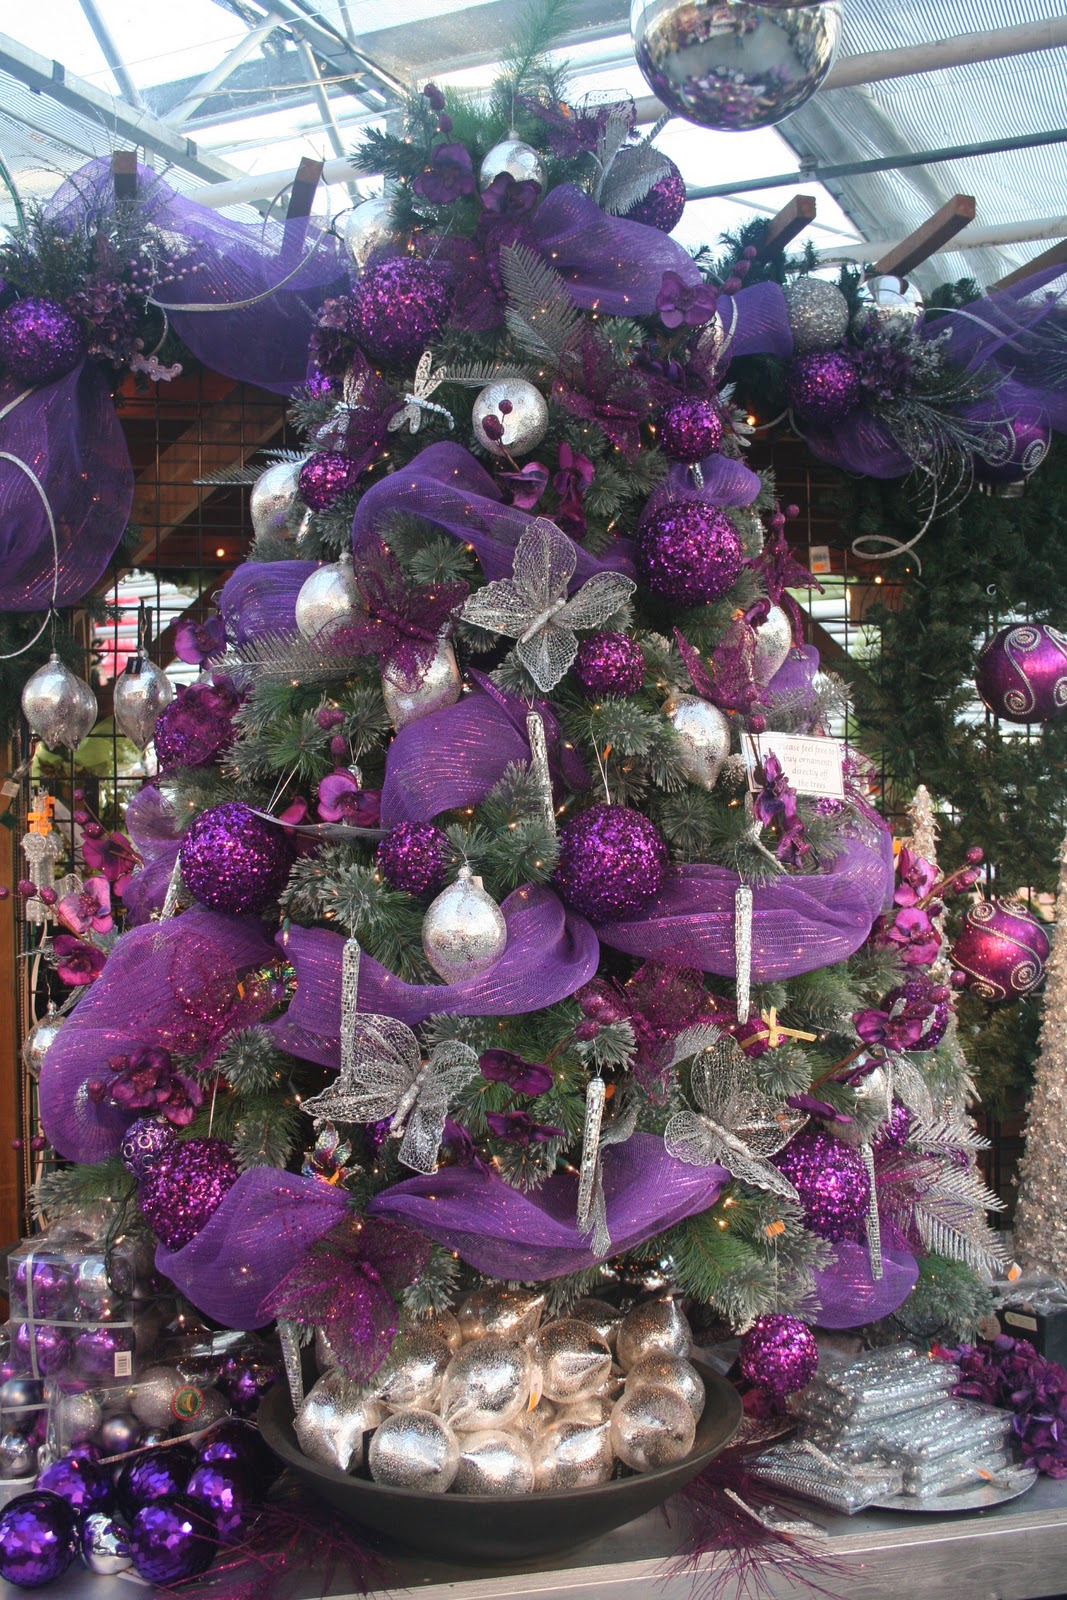 Christmas tree decorations purple and silver - Last Year We Had A Beautiful Red And Green Upside Down Tree At The Entrance Of The Garden Center This Year I Didn T Know How The Designers Would Top It